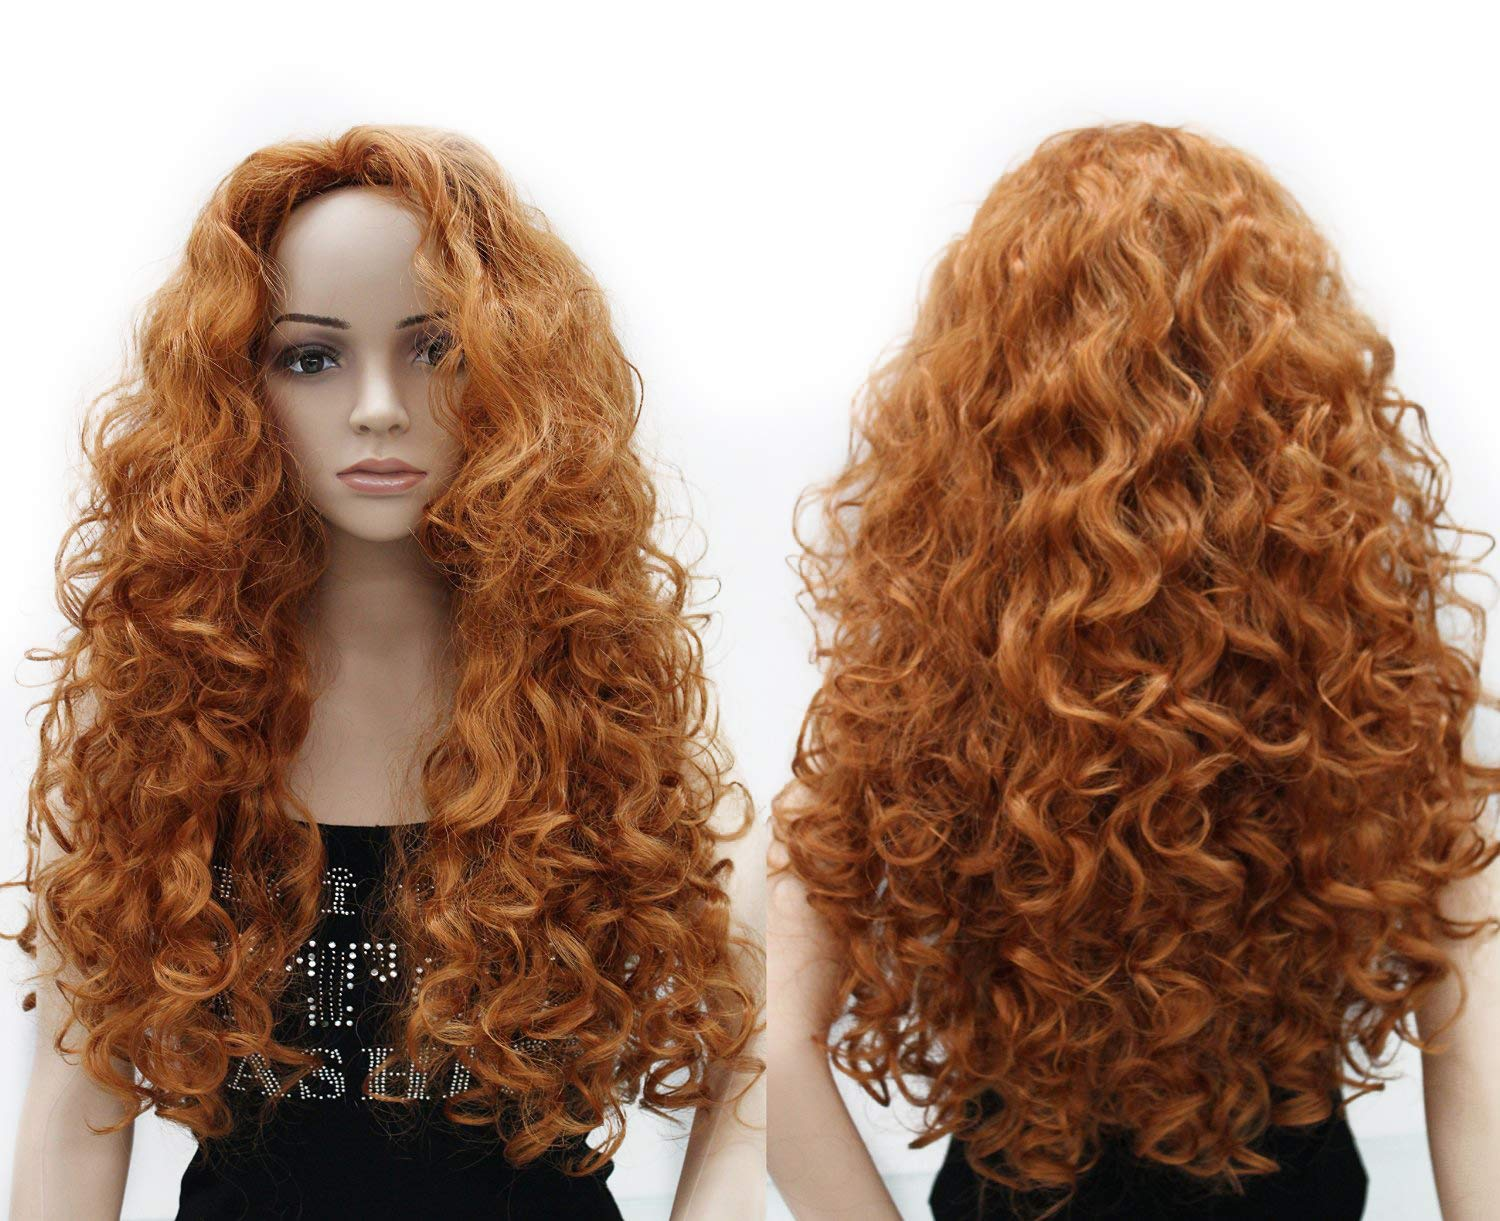 OneDor Long Hair Curly Wavy Full Head Halloween Wigs Cosplay Costume Party Hairpiece (130A-Fox Red) by Onedor